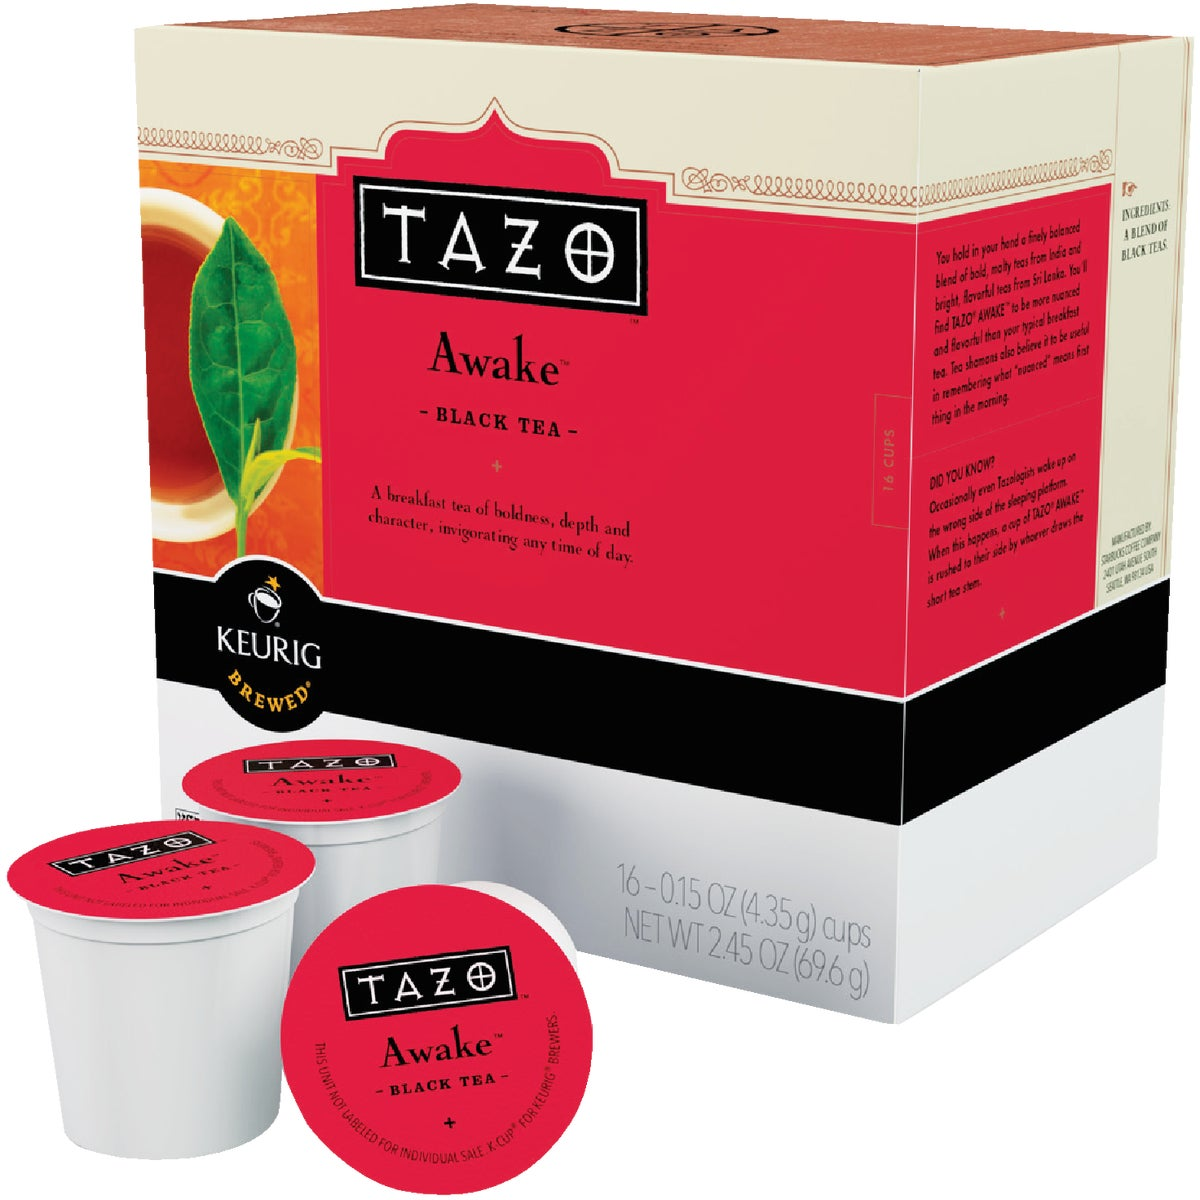 K-CUP TAZO AWAKE TEA - 10518 by Keurig     M Block